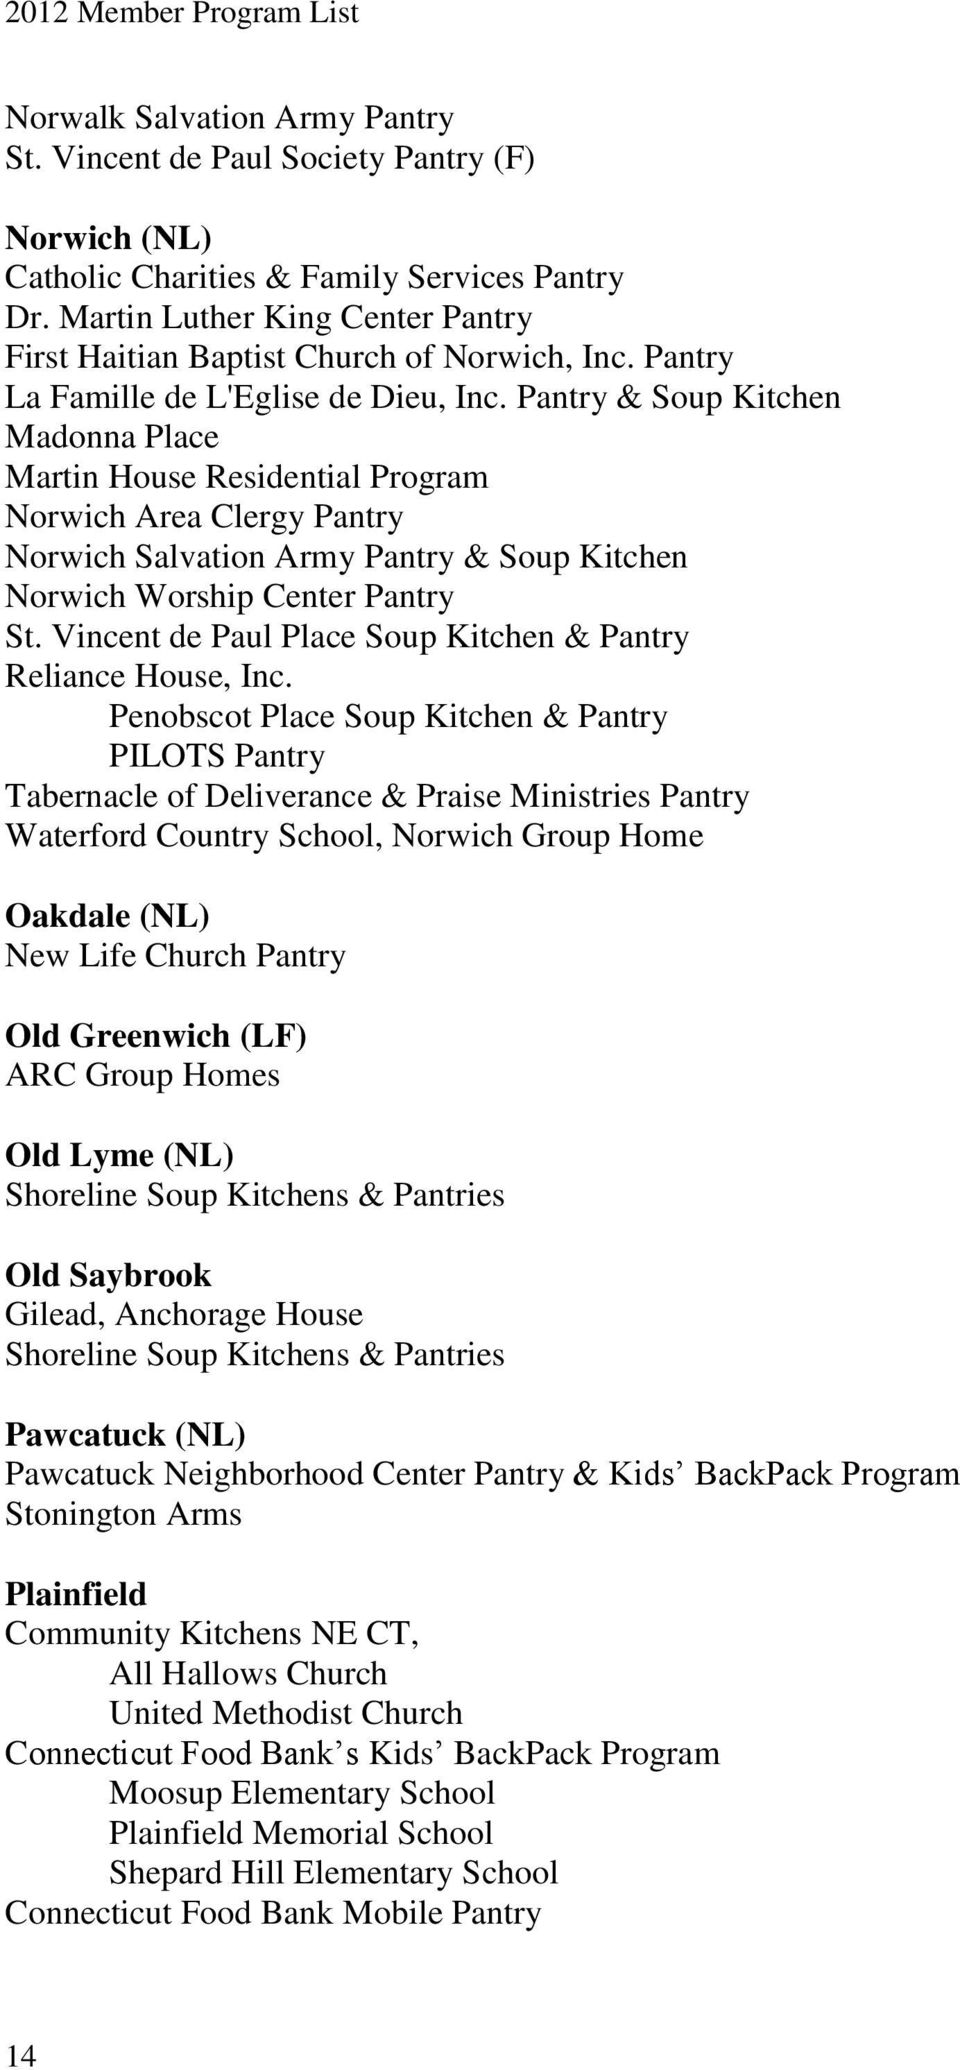 Pantry & Soup Kitchen Madonna Place Martin House Residential Program Norwich Area Clergy Pantry Norwich Salvation Army Pantry & Soup Kitchen Norwich Worship Center Pantry St.